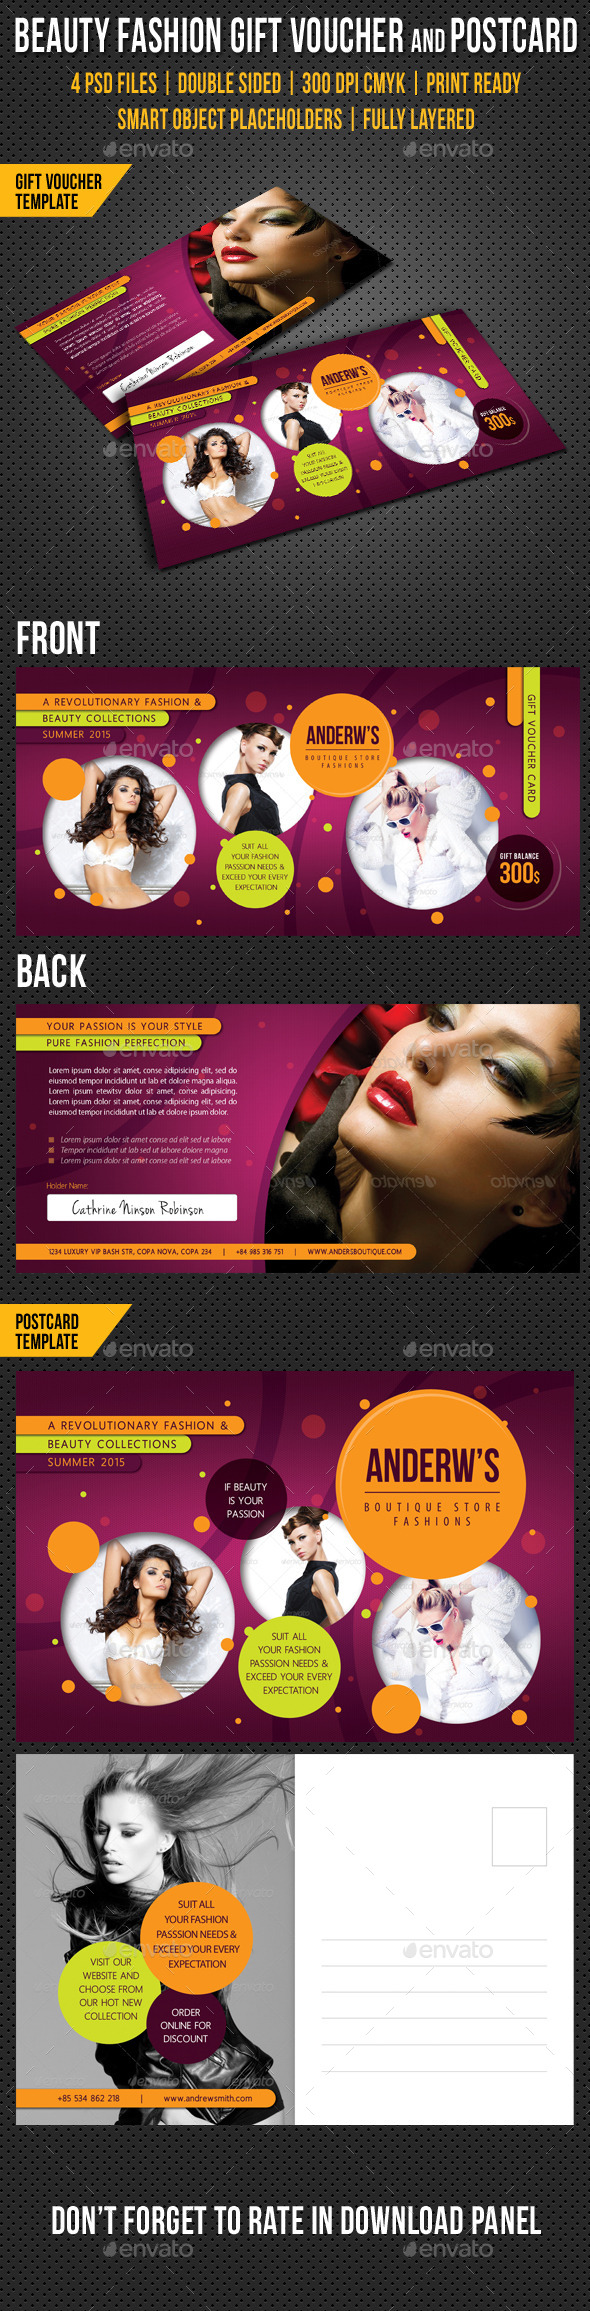 Beauty Fashion Gift Voucher and Postcard V03 - Cards & Invites Print Templates